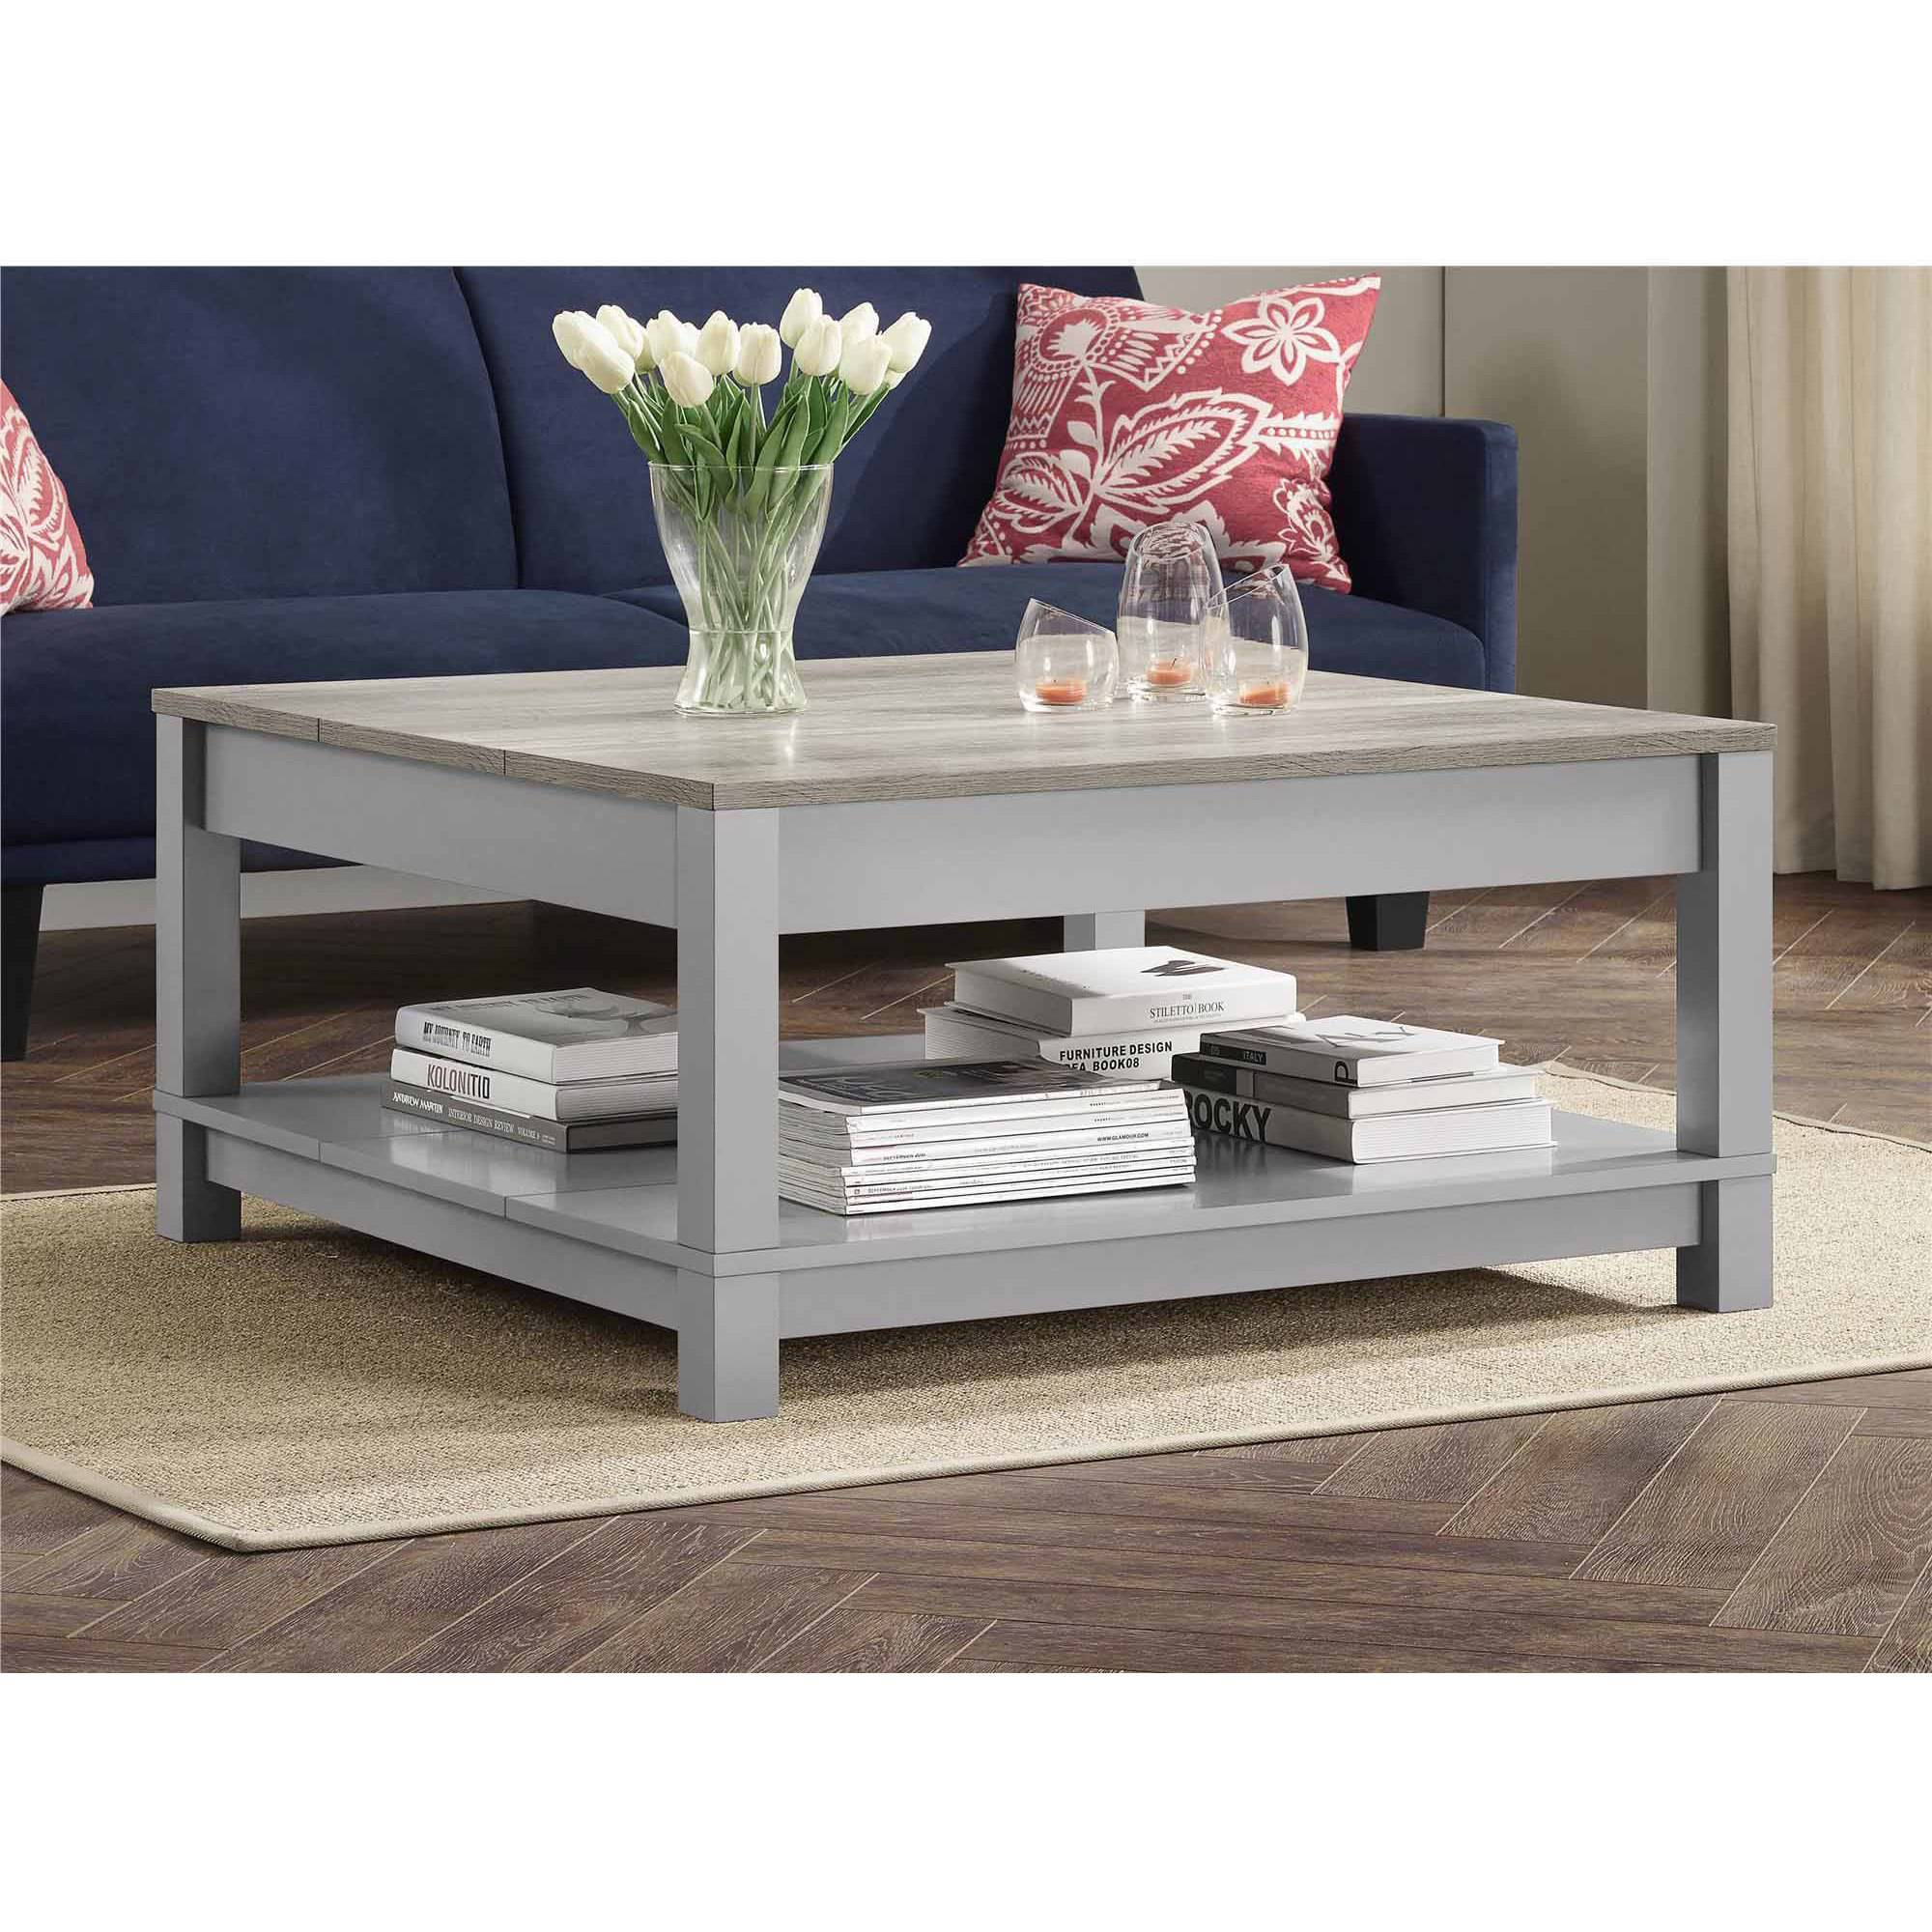 better homes and gardens langley bay coffee table multiple colors walmartcom